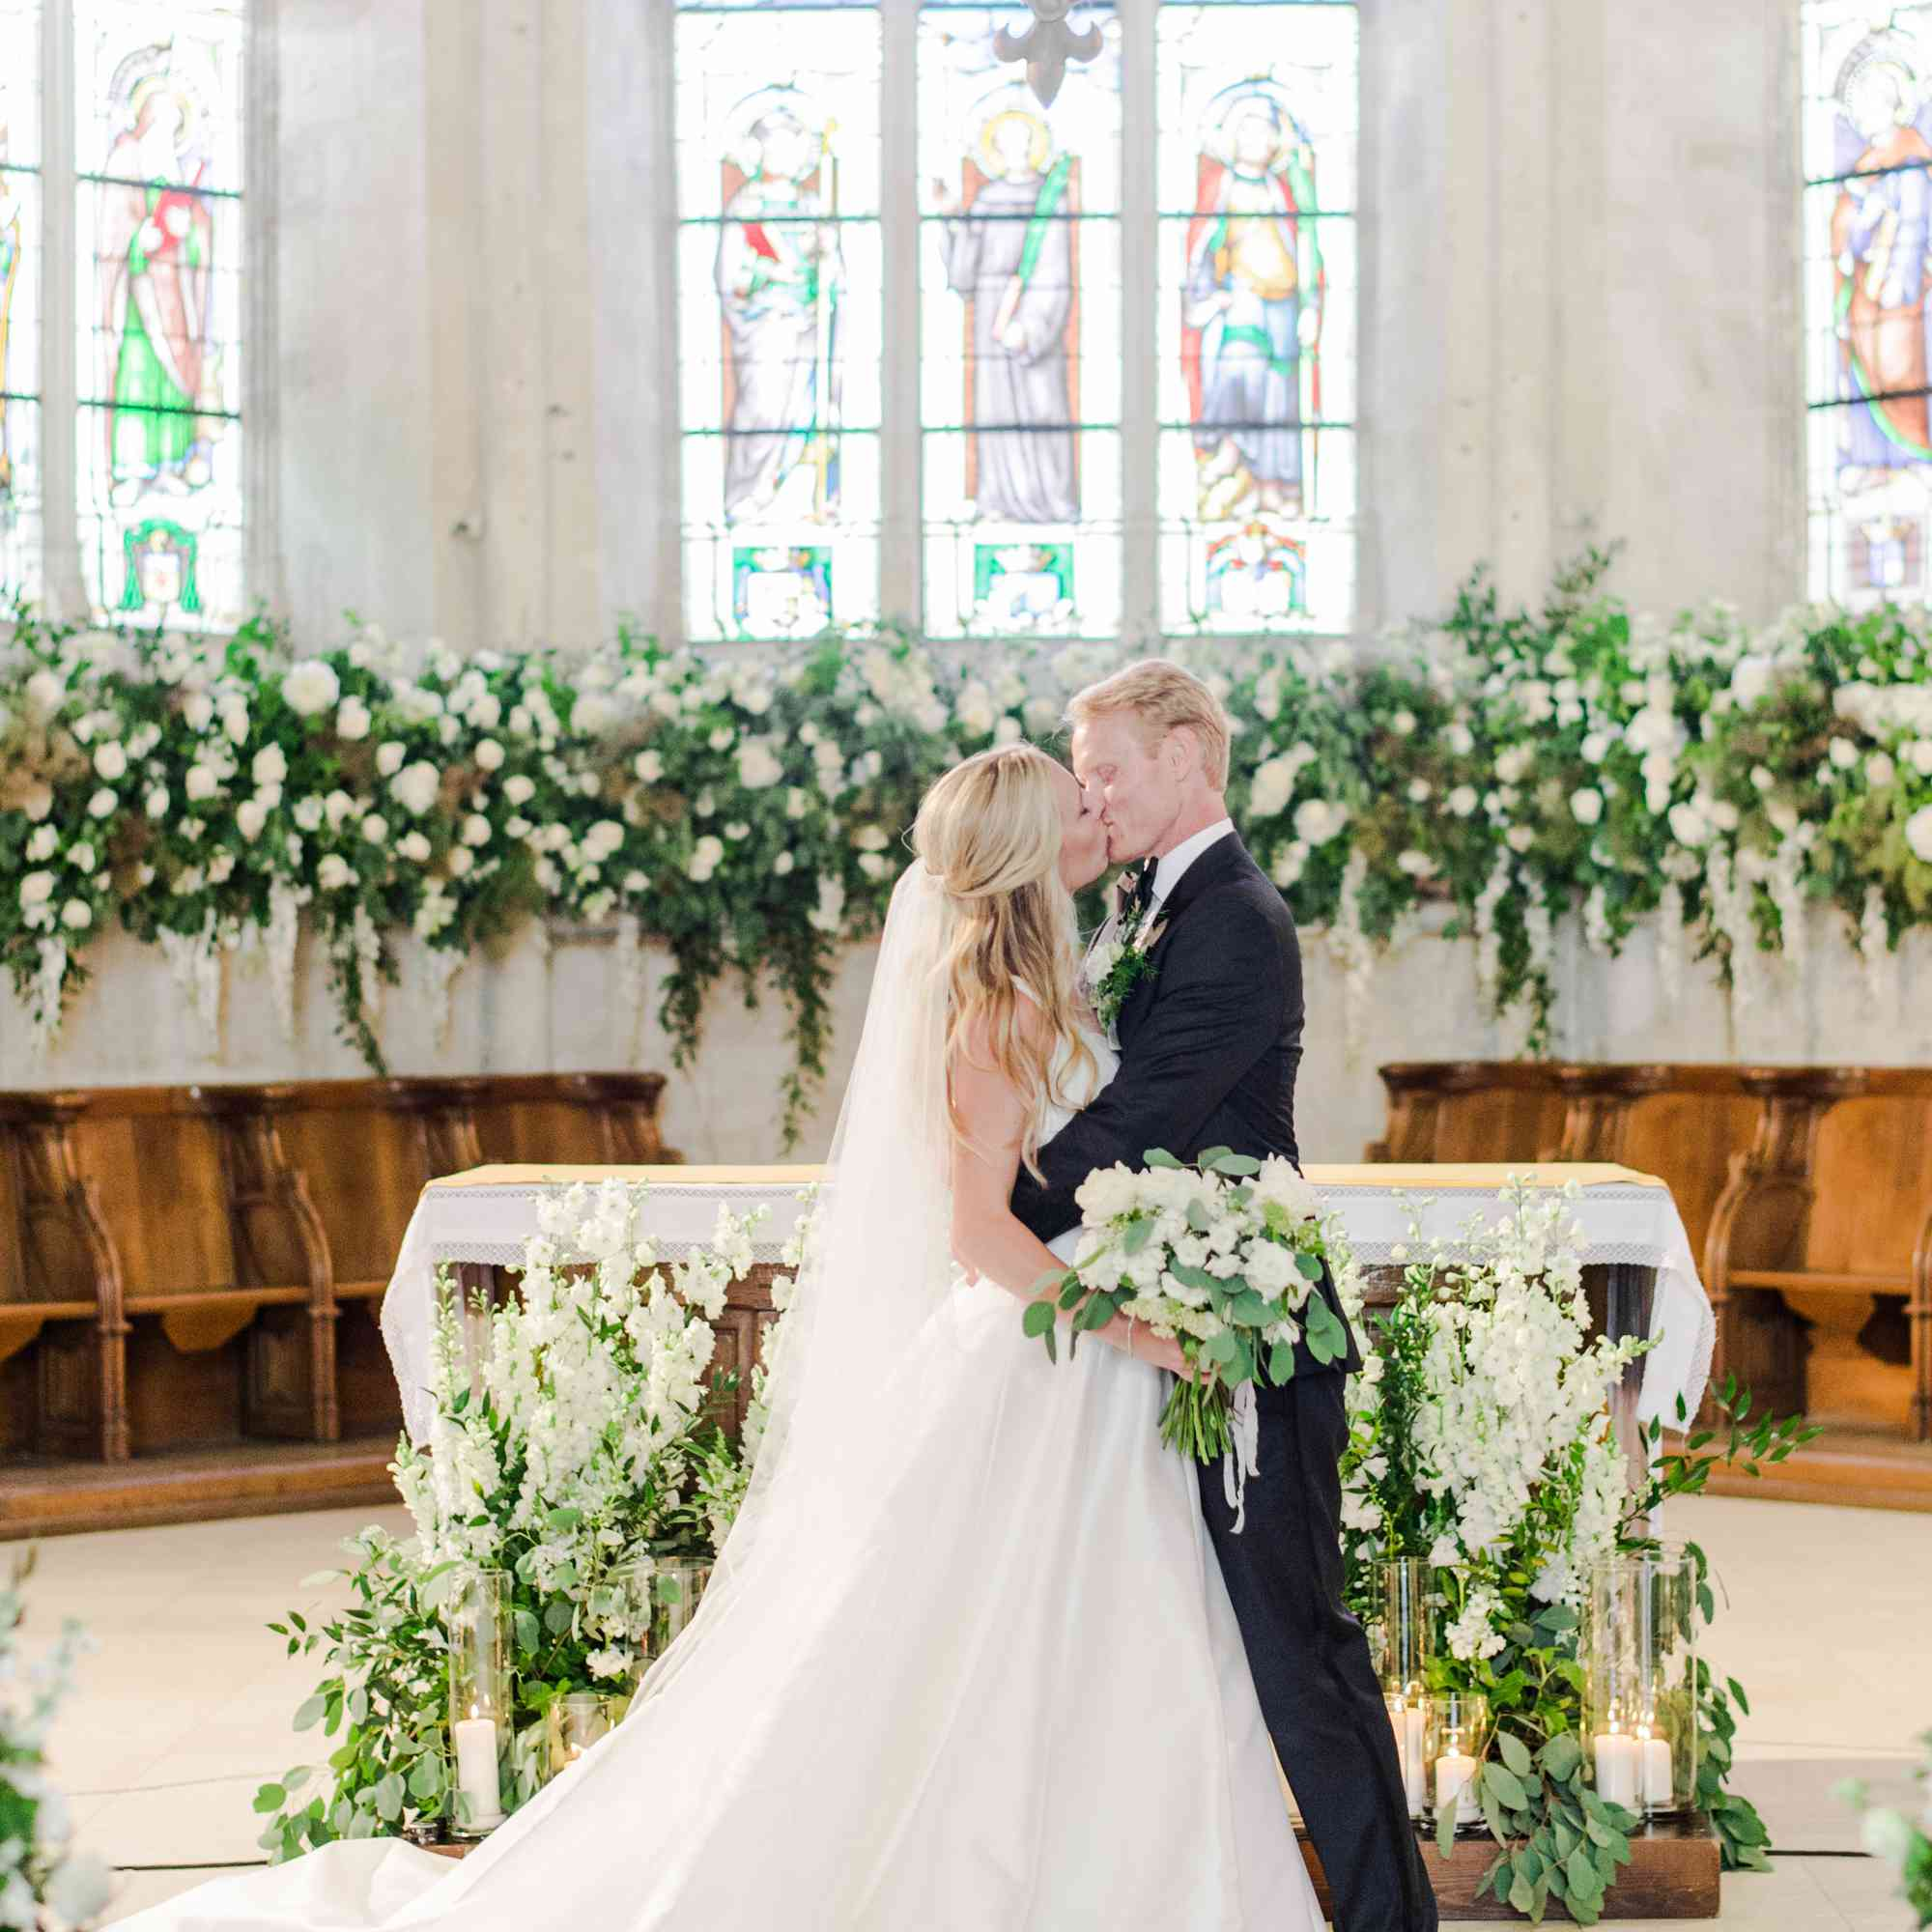 <p>Bride and groom kissing at altar</p><br><br>